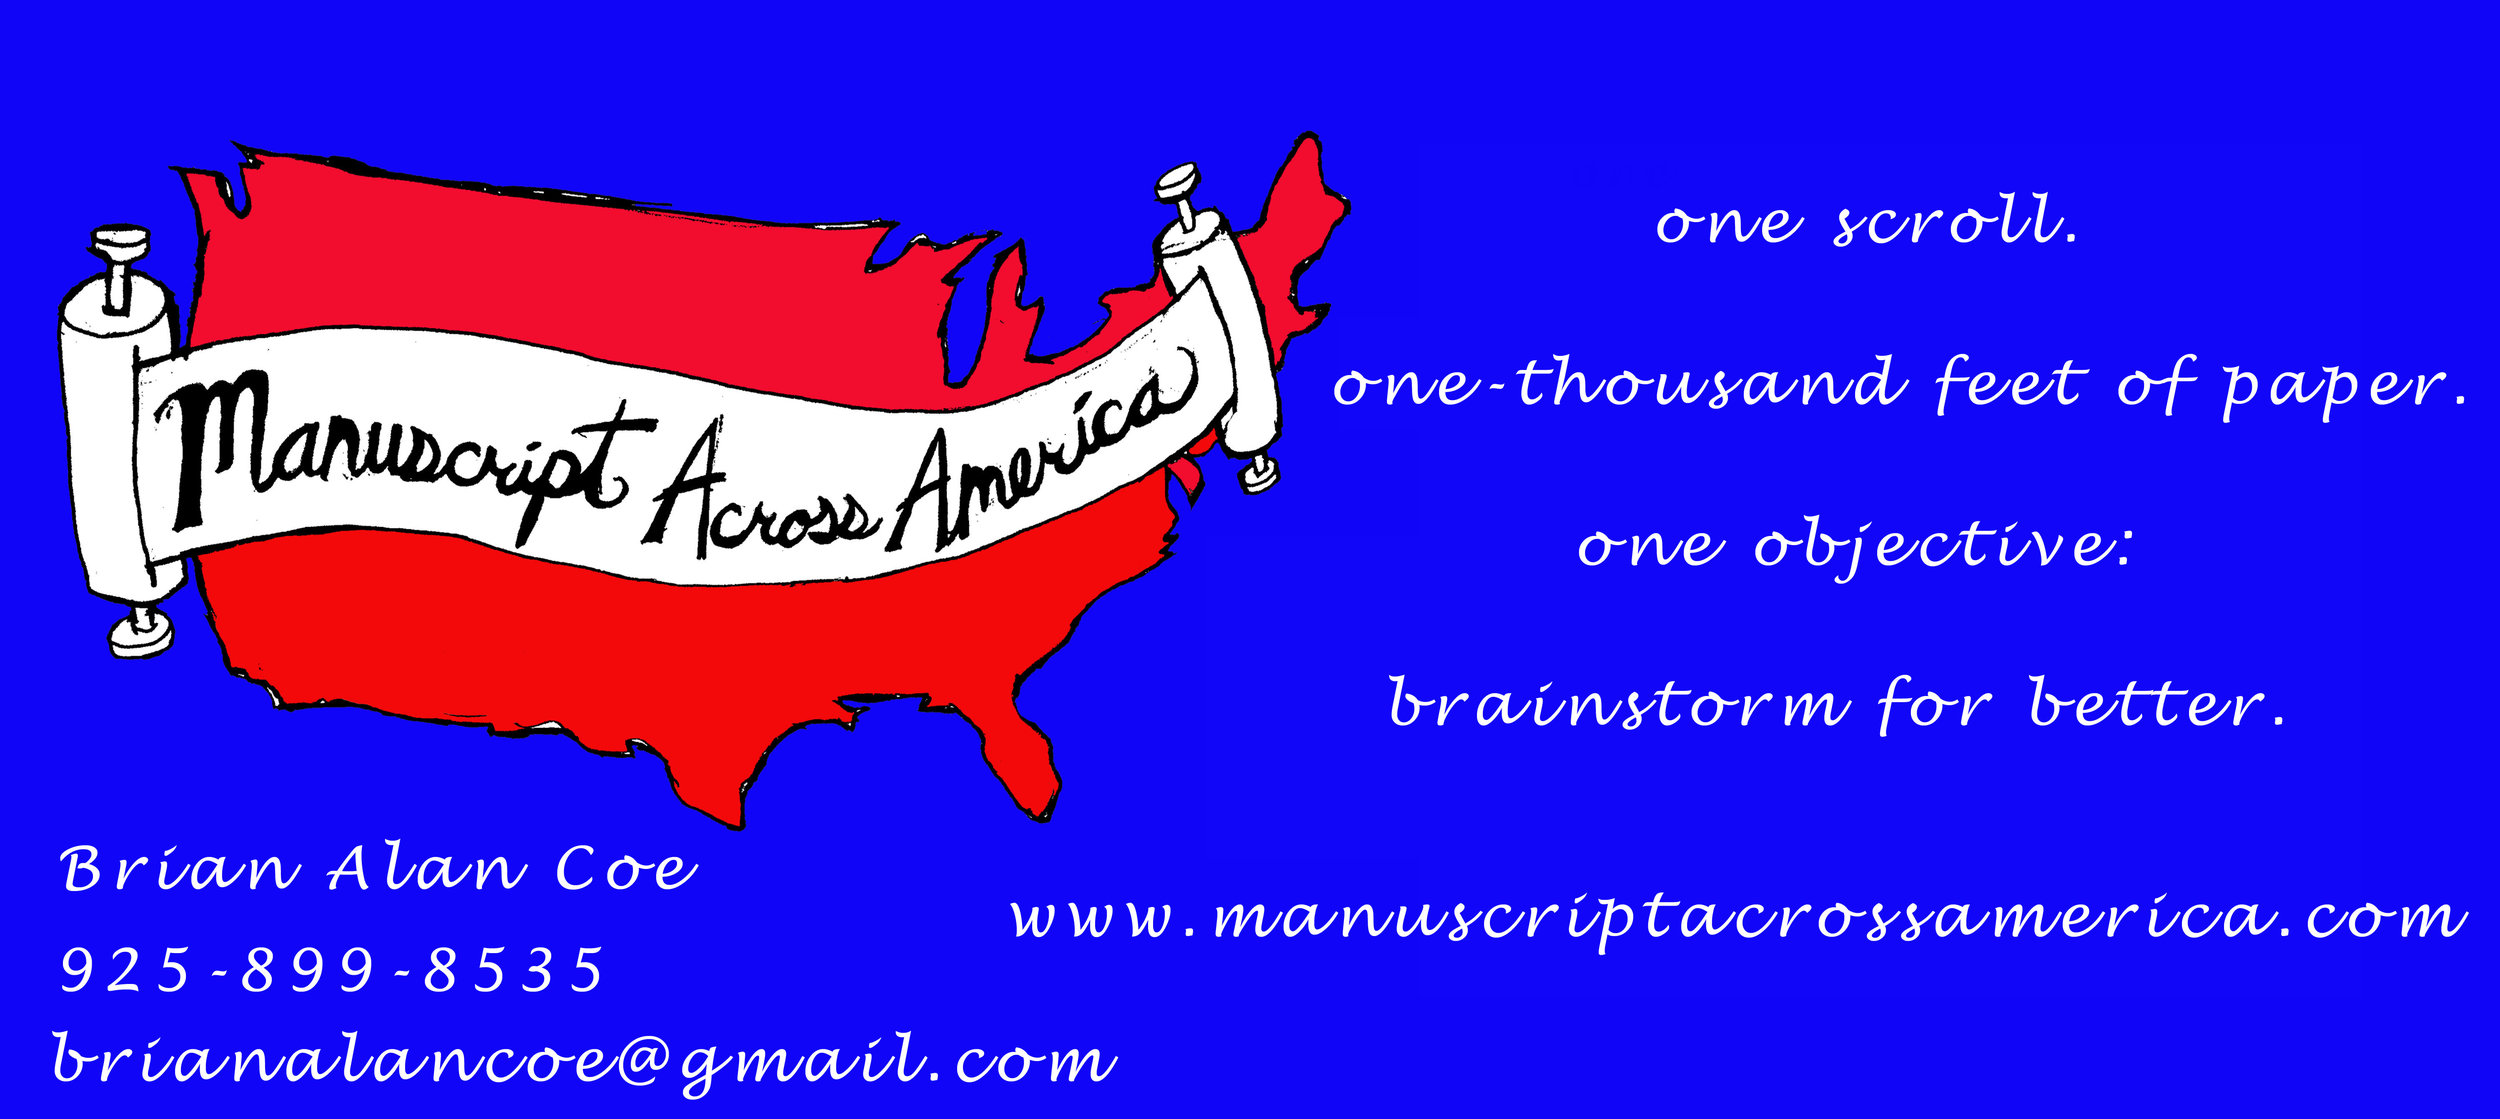 CLICK THE IMAGE ABOVE TO WATCH THE MANUSCRIPT ACROSS AMERICA DOCUMENTARY!